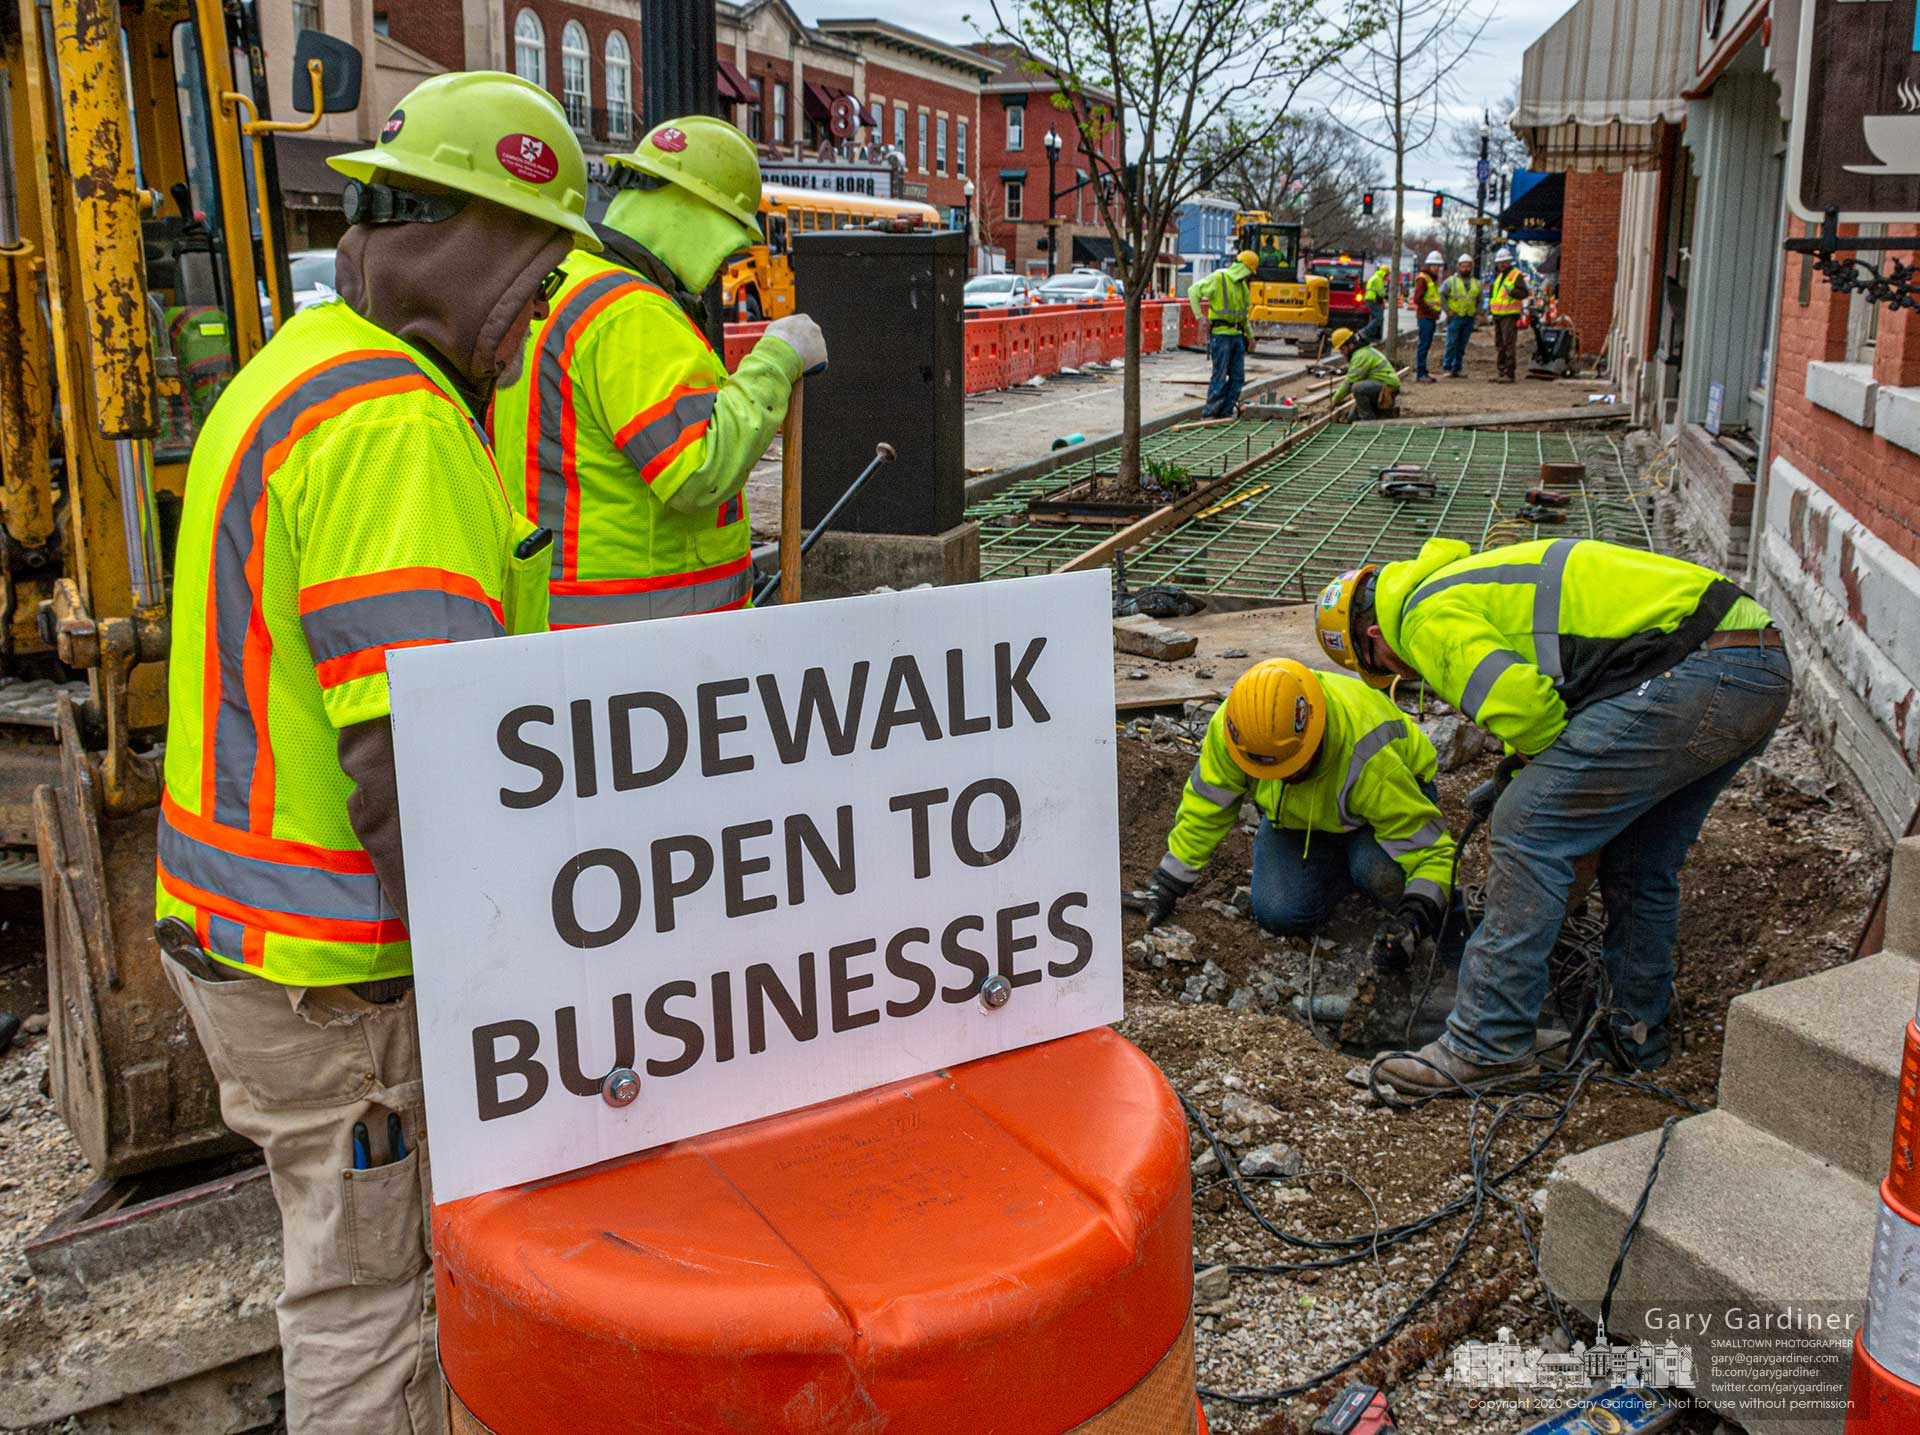 A sign noting businesses are open on the west side of State Street during sidewalk rebuilding appears inaccurate as workers lay reinforcing rods and forms for new sidewalks to be poured later in the week. My Final Photo for March 30, 2020.